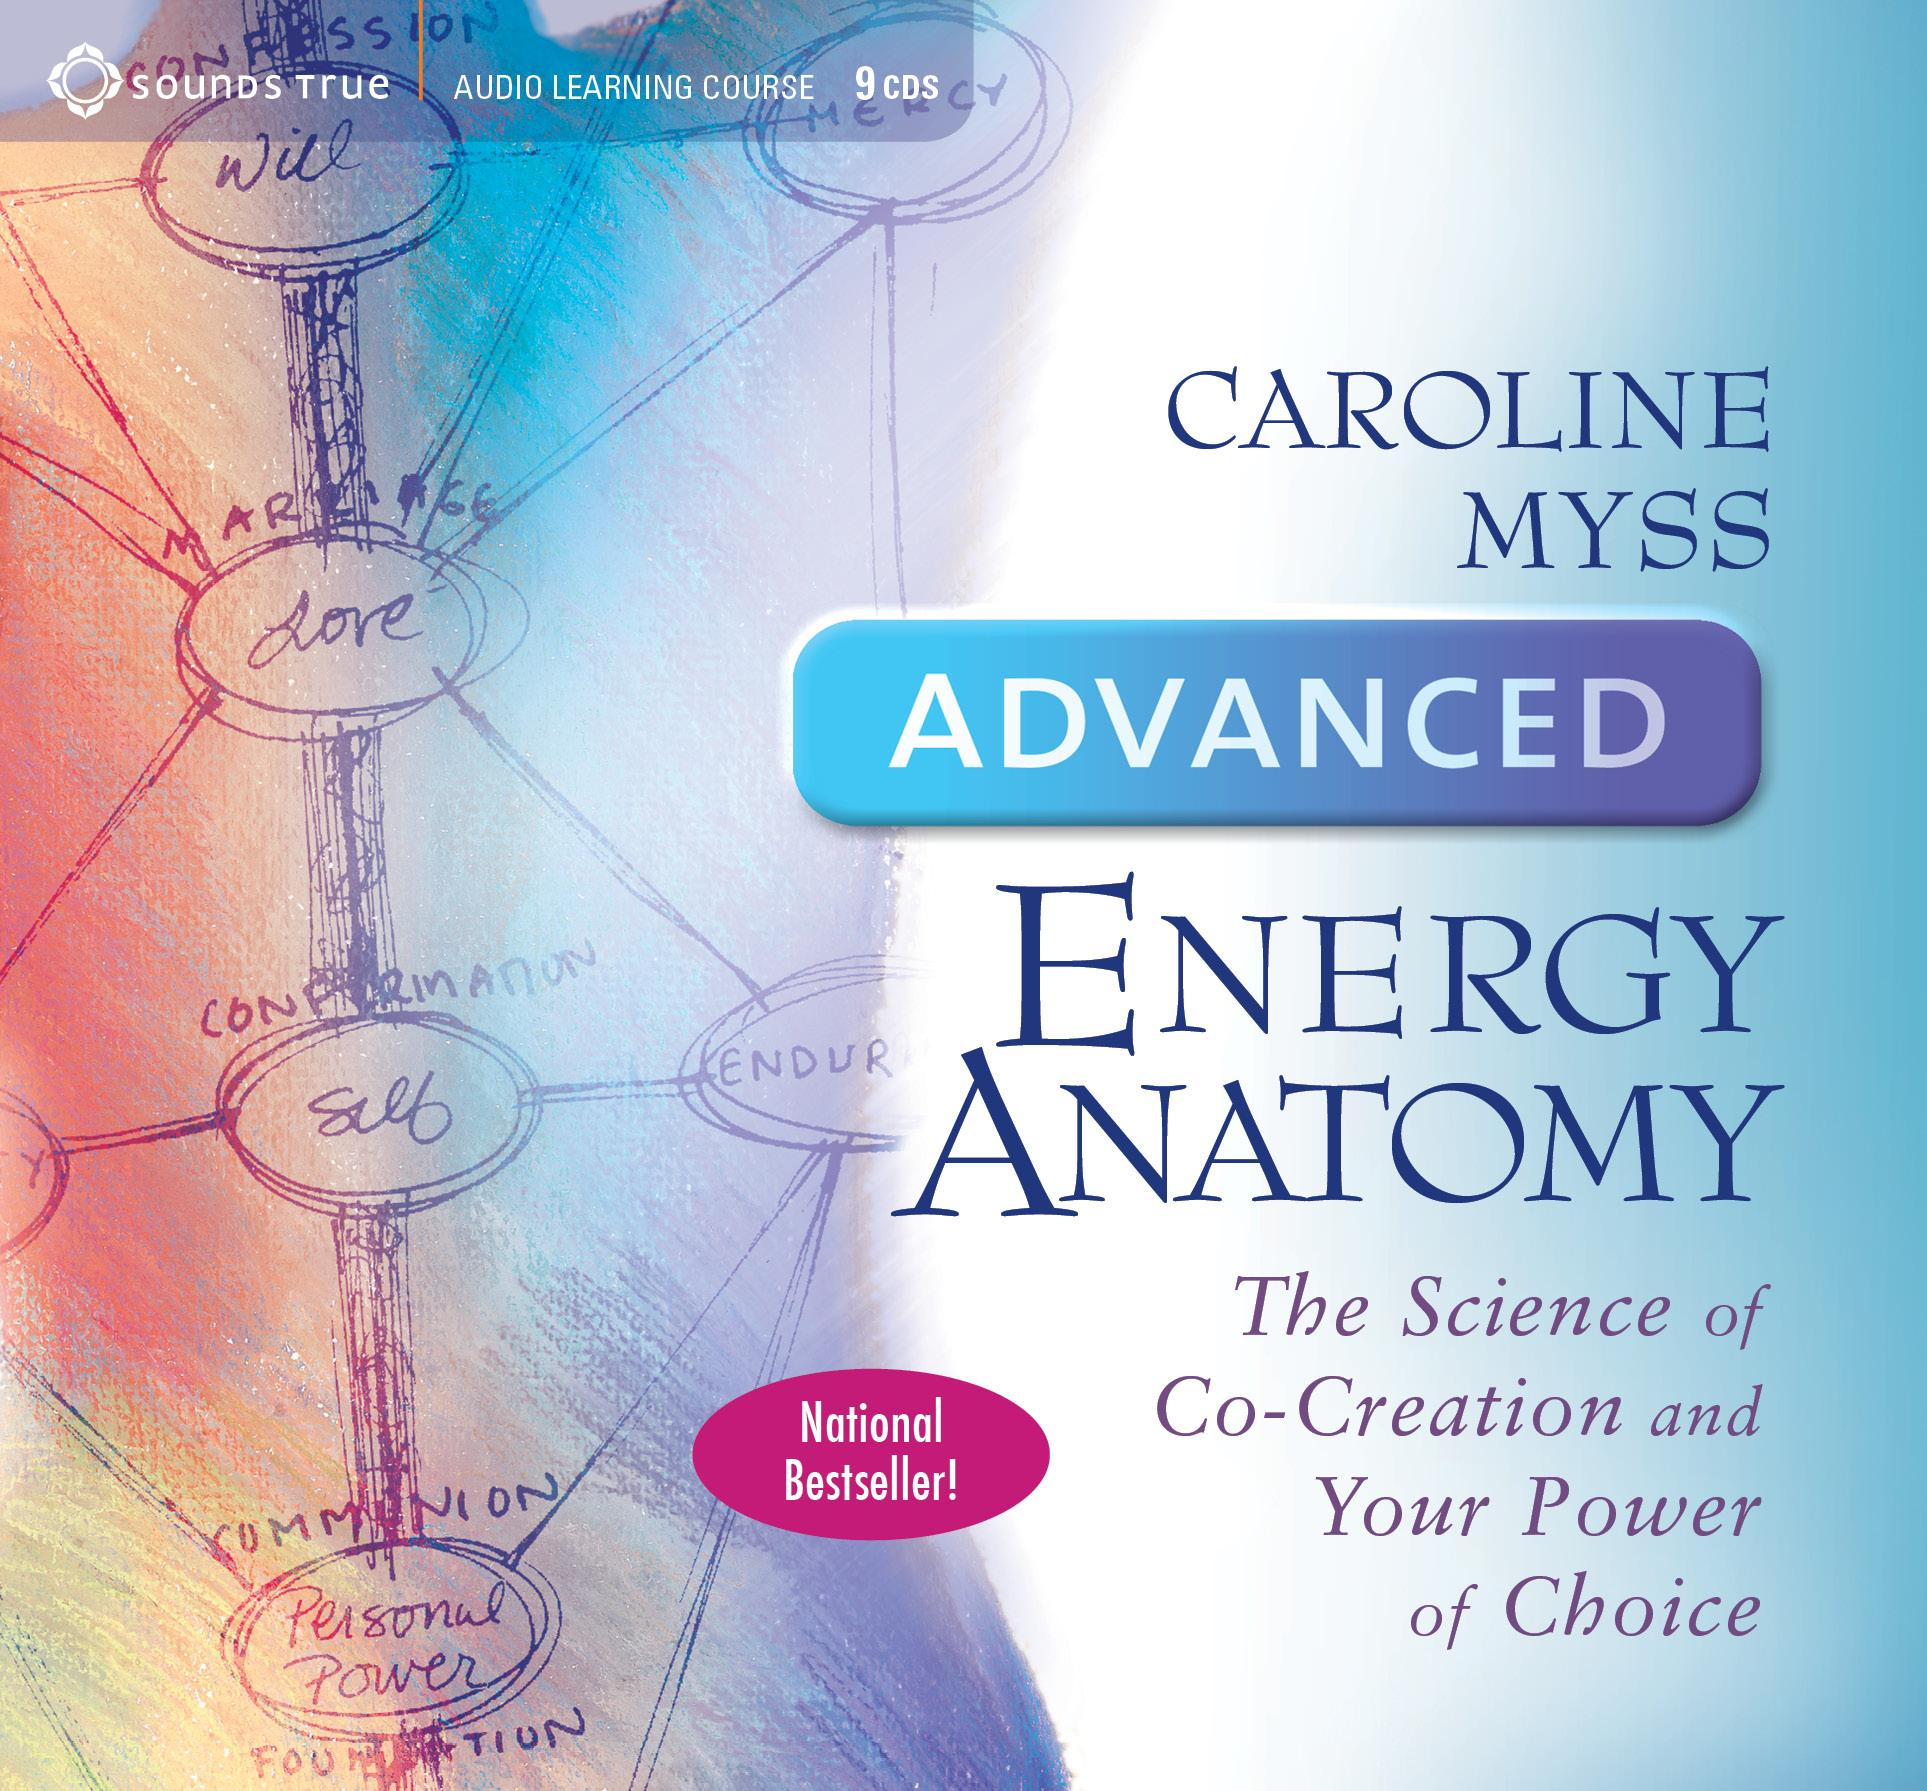 Advanced Energy Anatomy : The Science of Co-Creation and Your Power of Choice